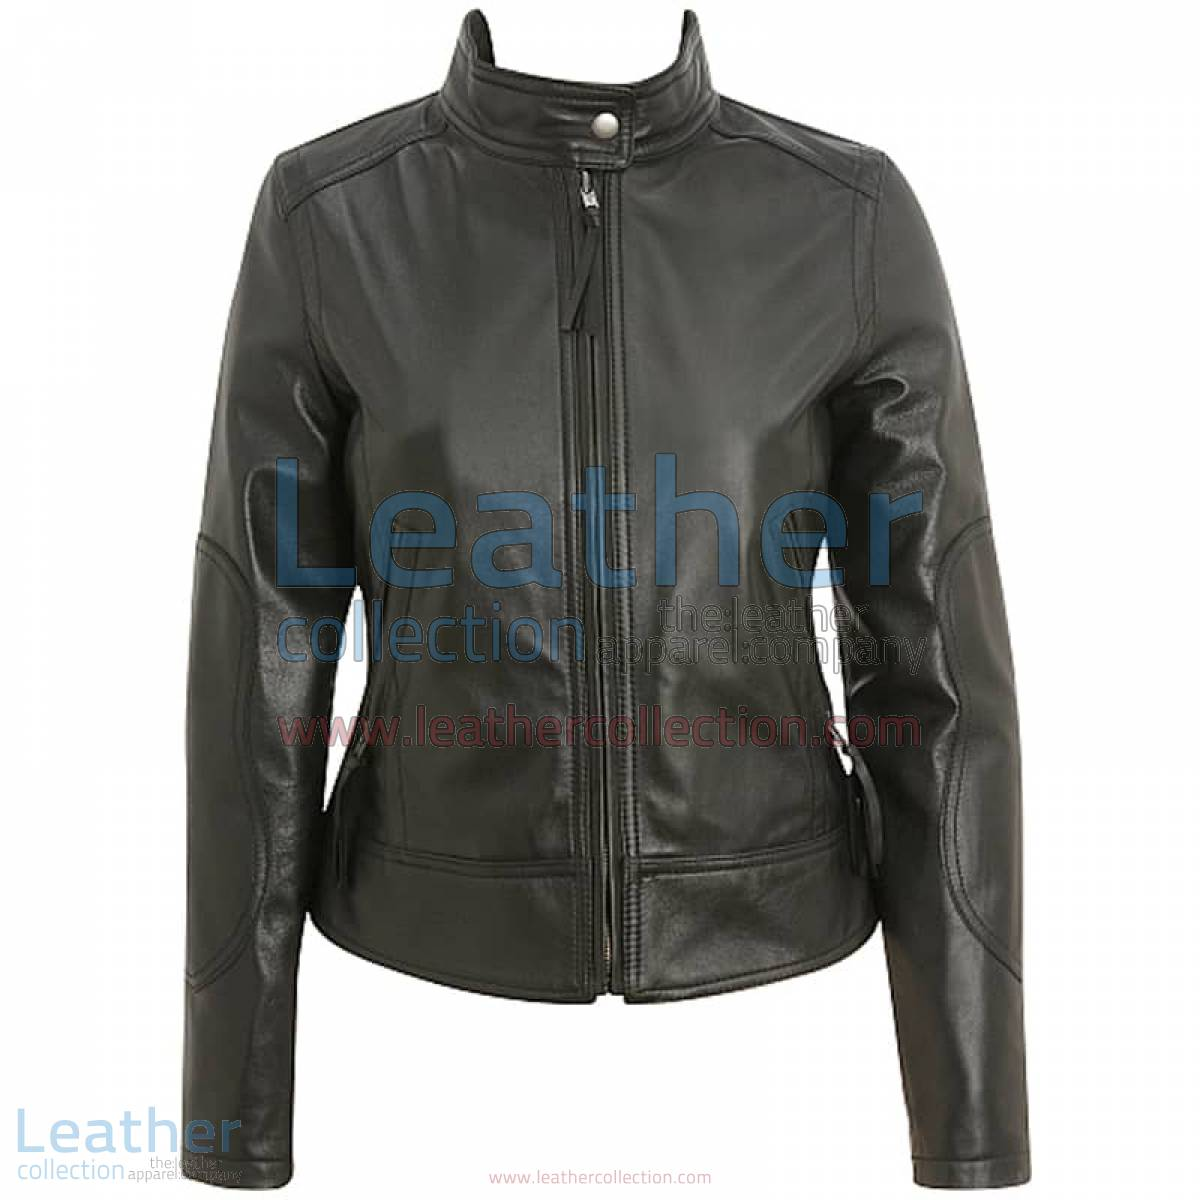 Band Collar Leather Motorcycle Jacket | leather motorcycle jacket,band collar jacket